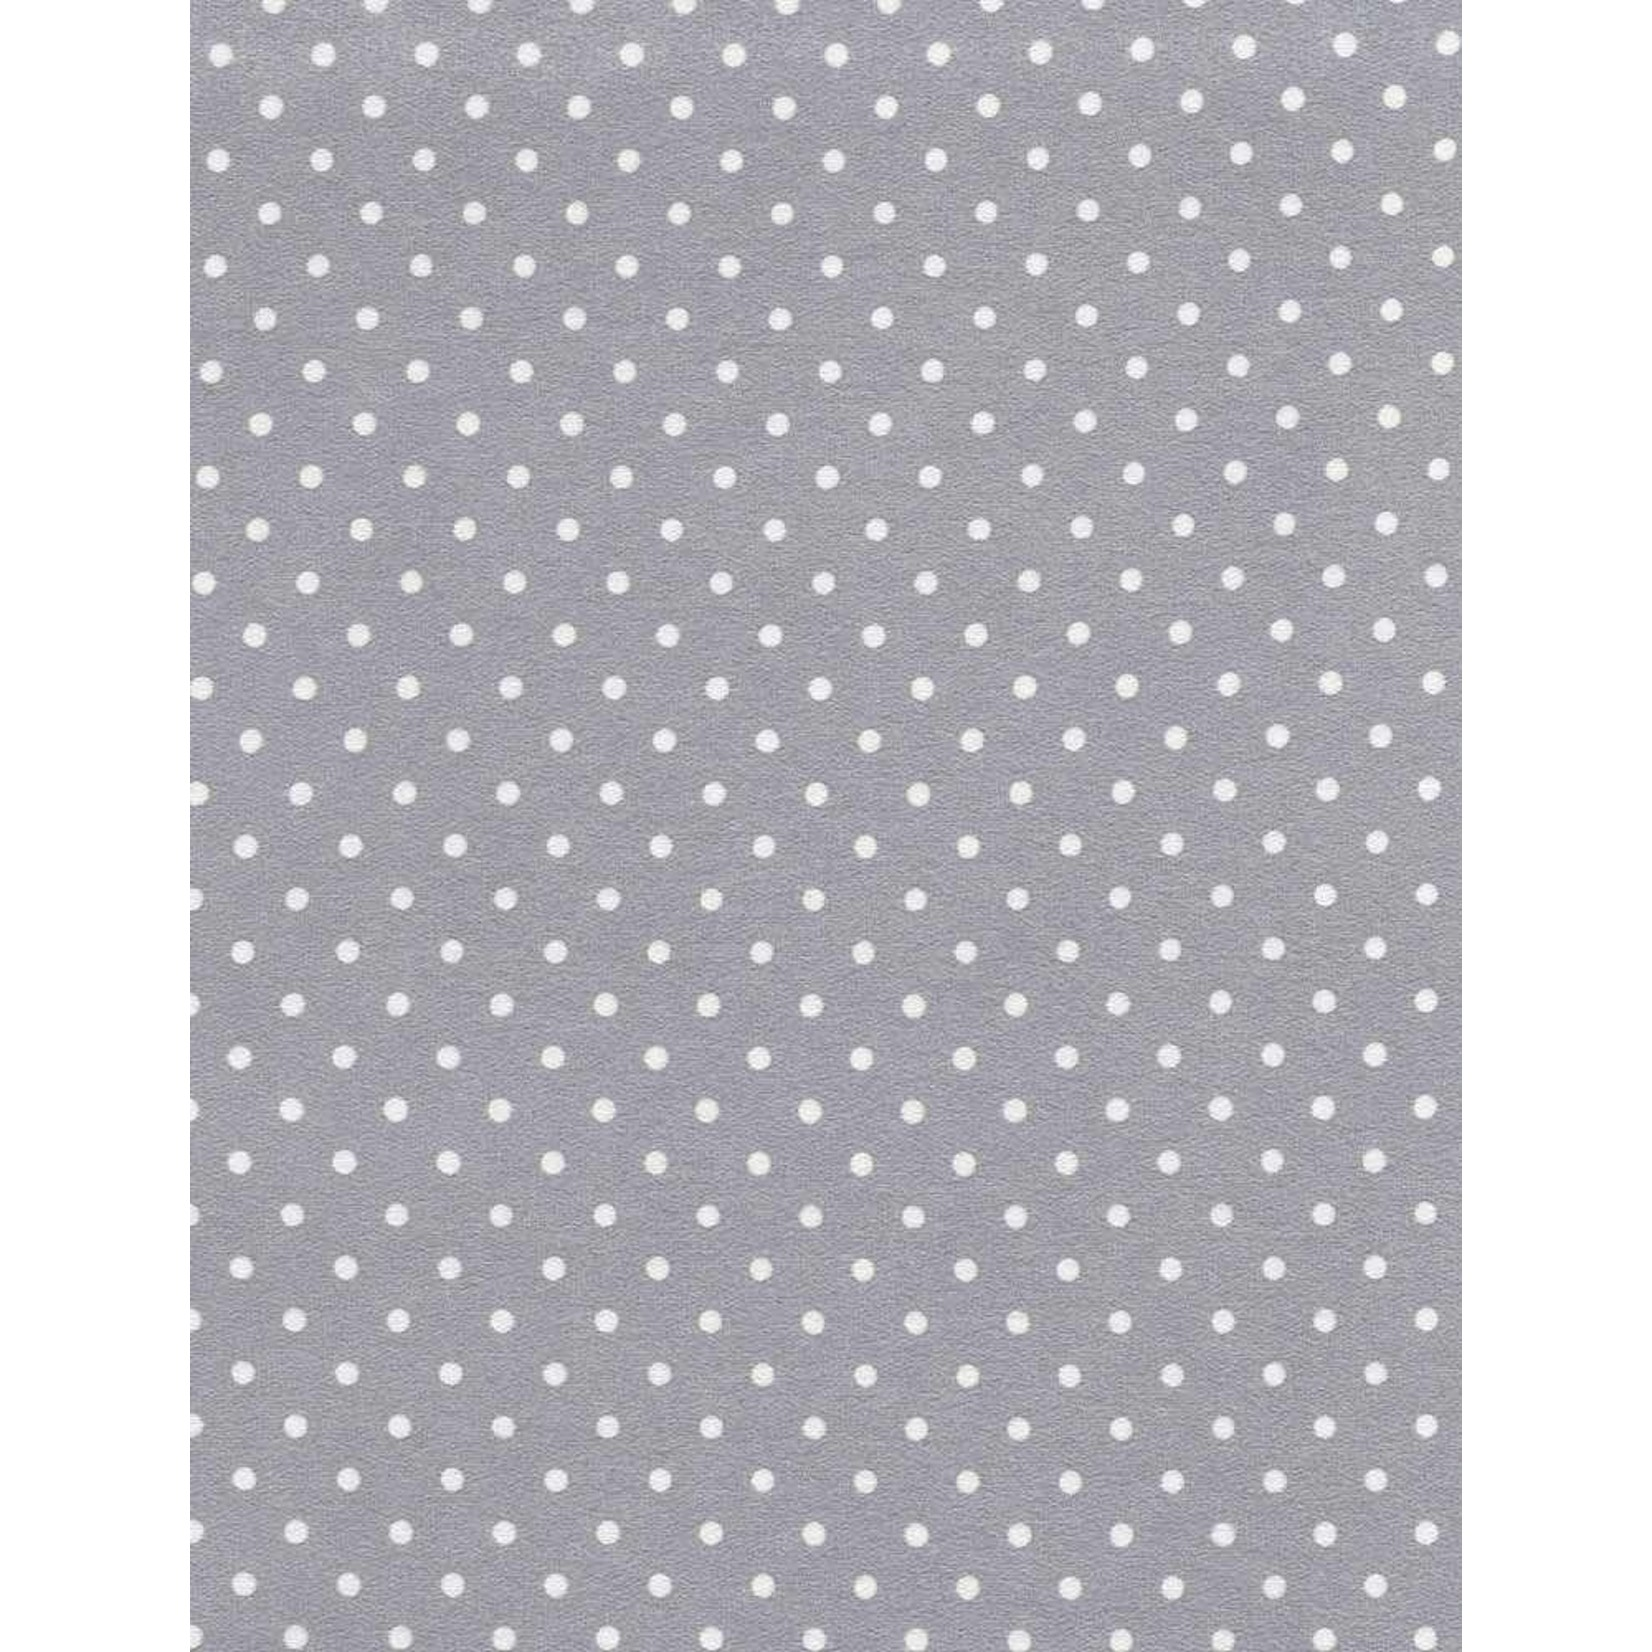 TIMELESS TREASURES Snow Day, Flannel, Polka Dot, Grey per cm or $20/m